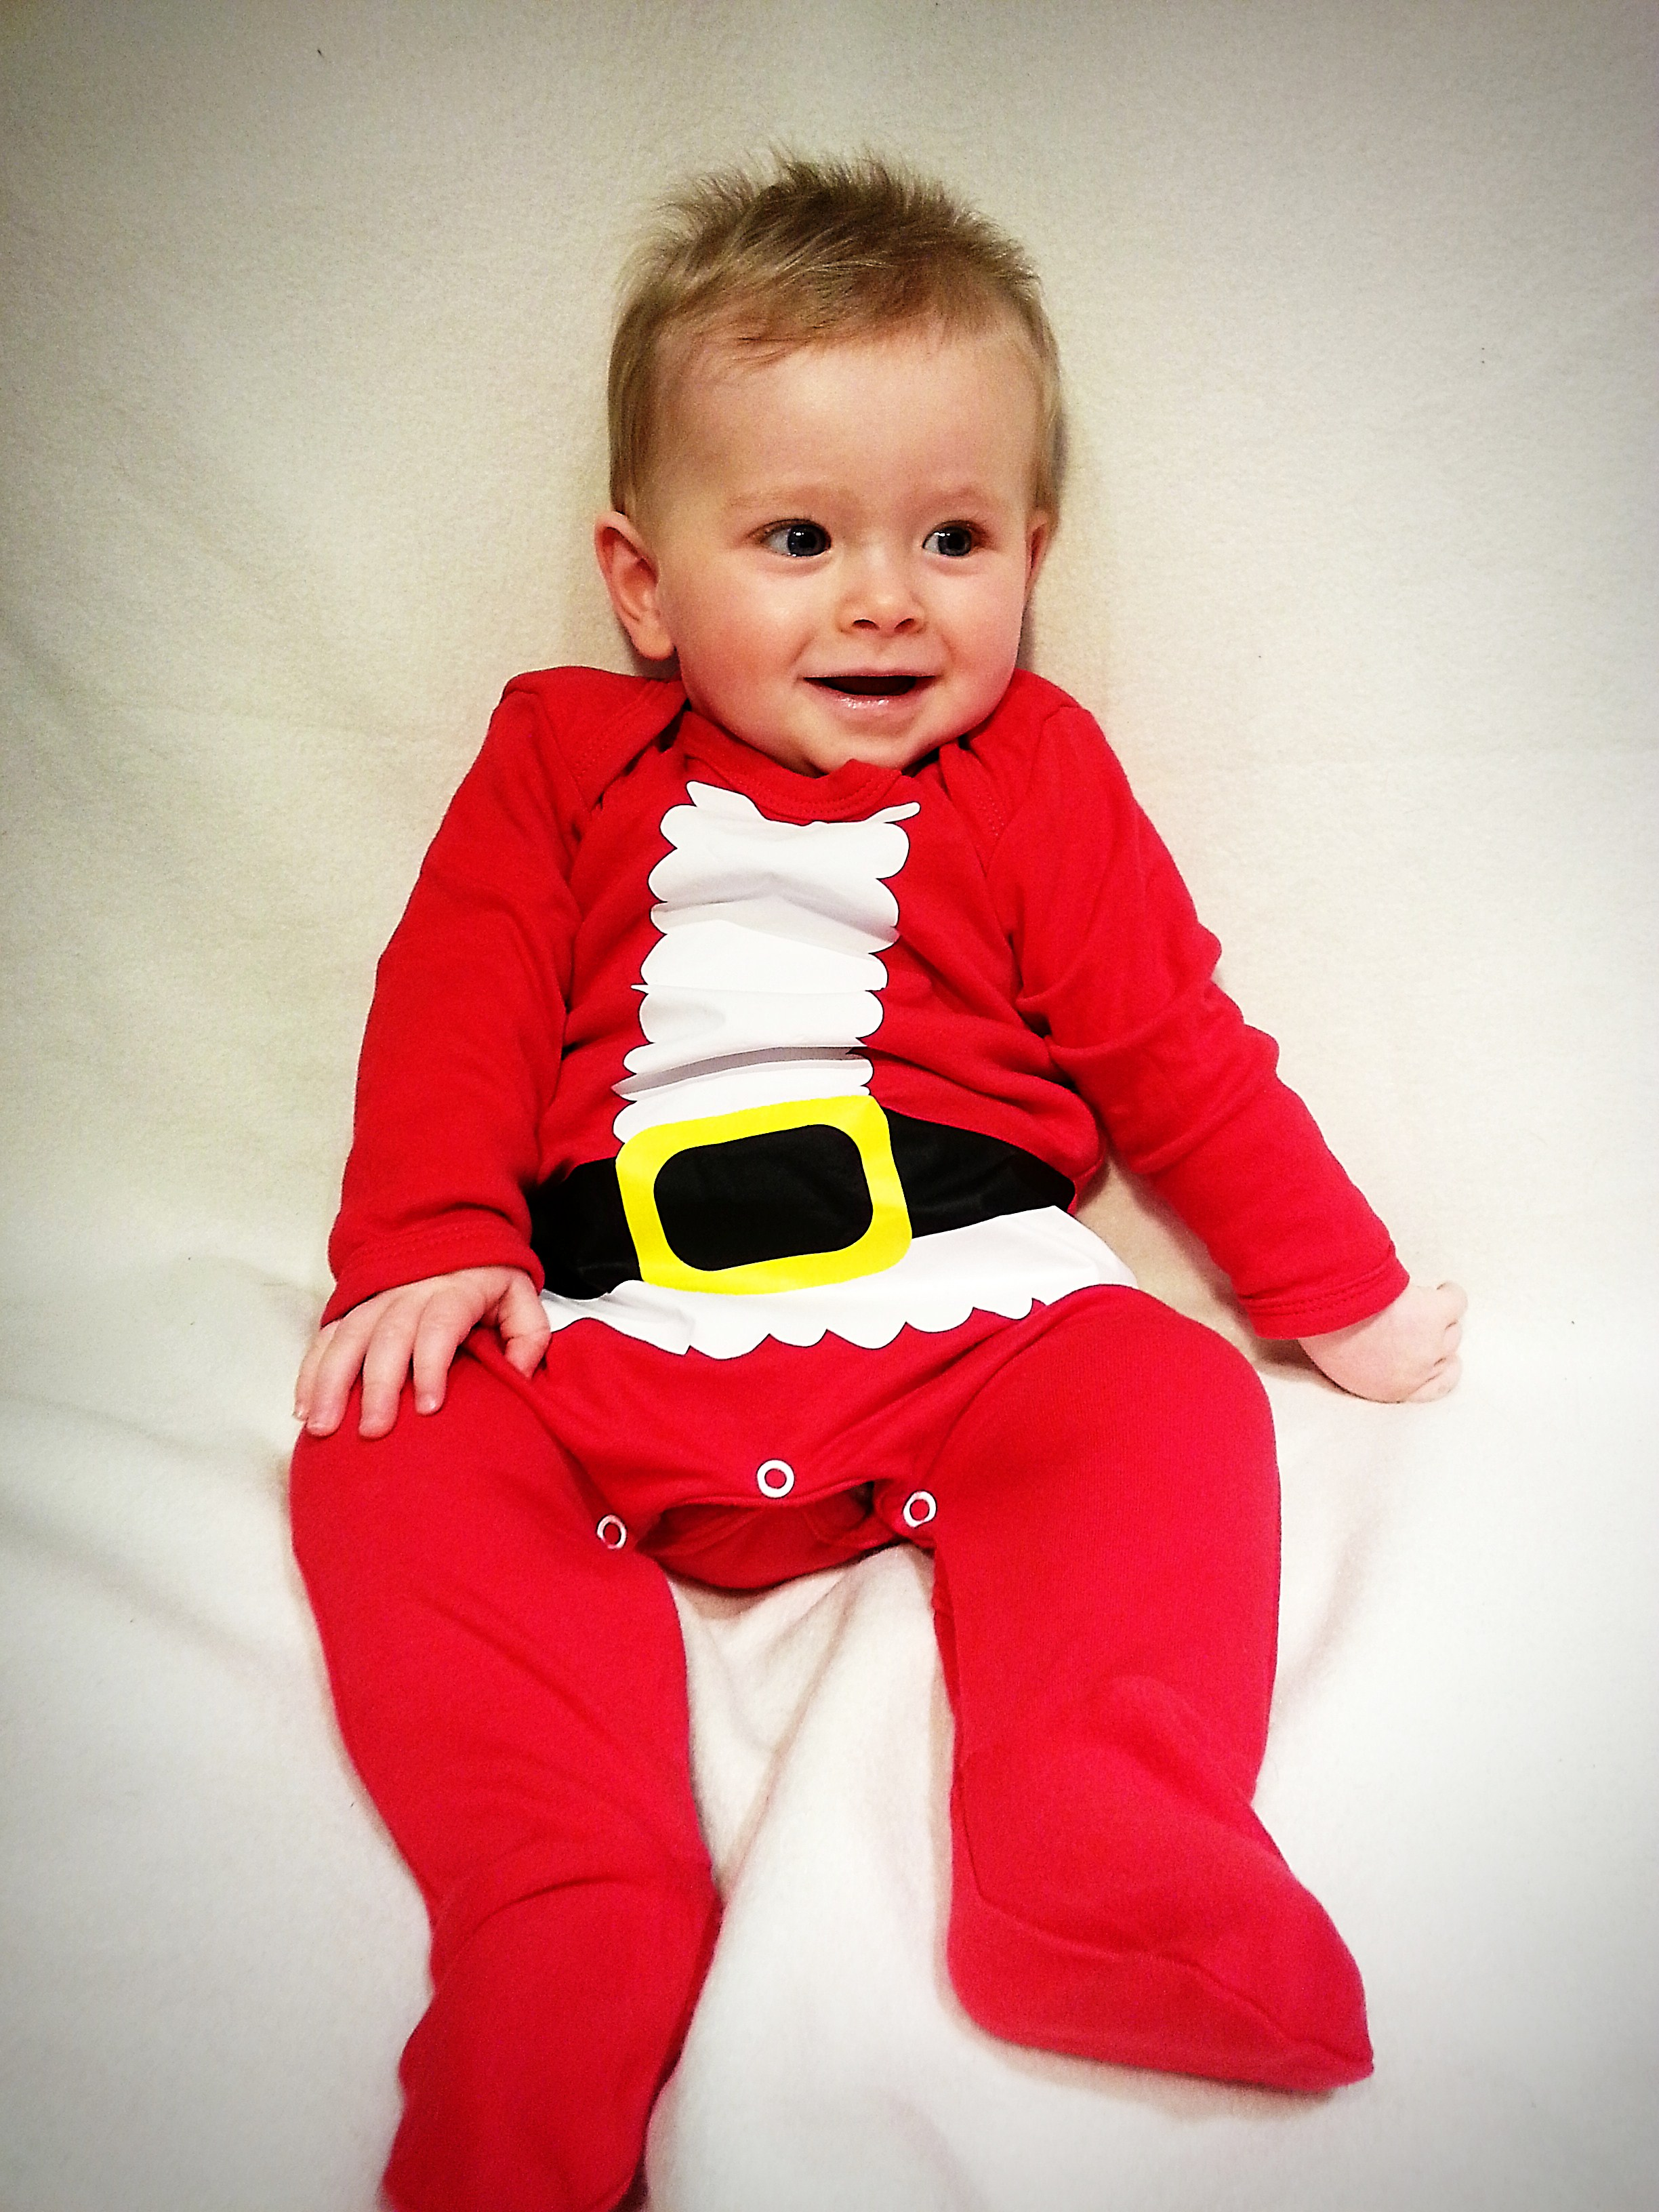 Christmas outfits are now available. Yes, we said Christmas!